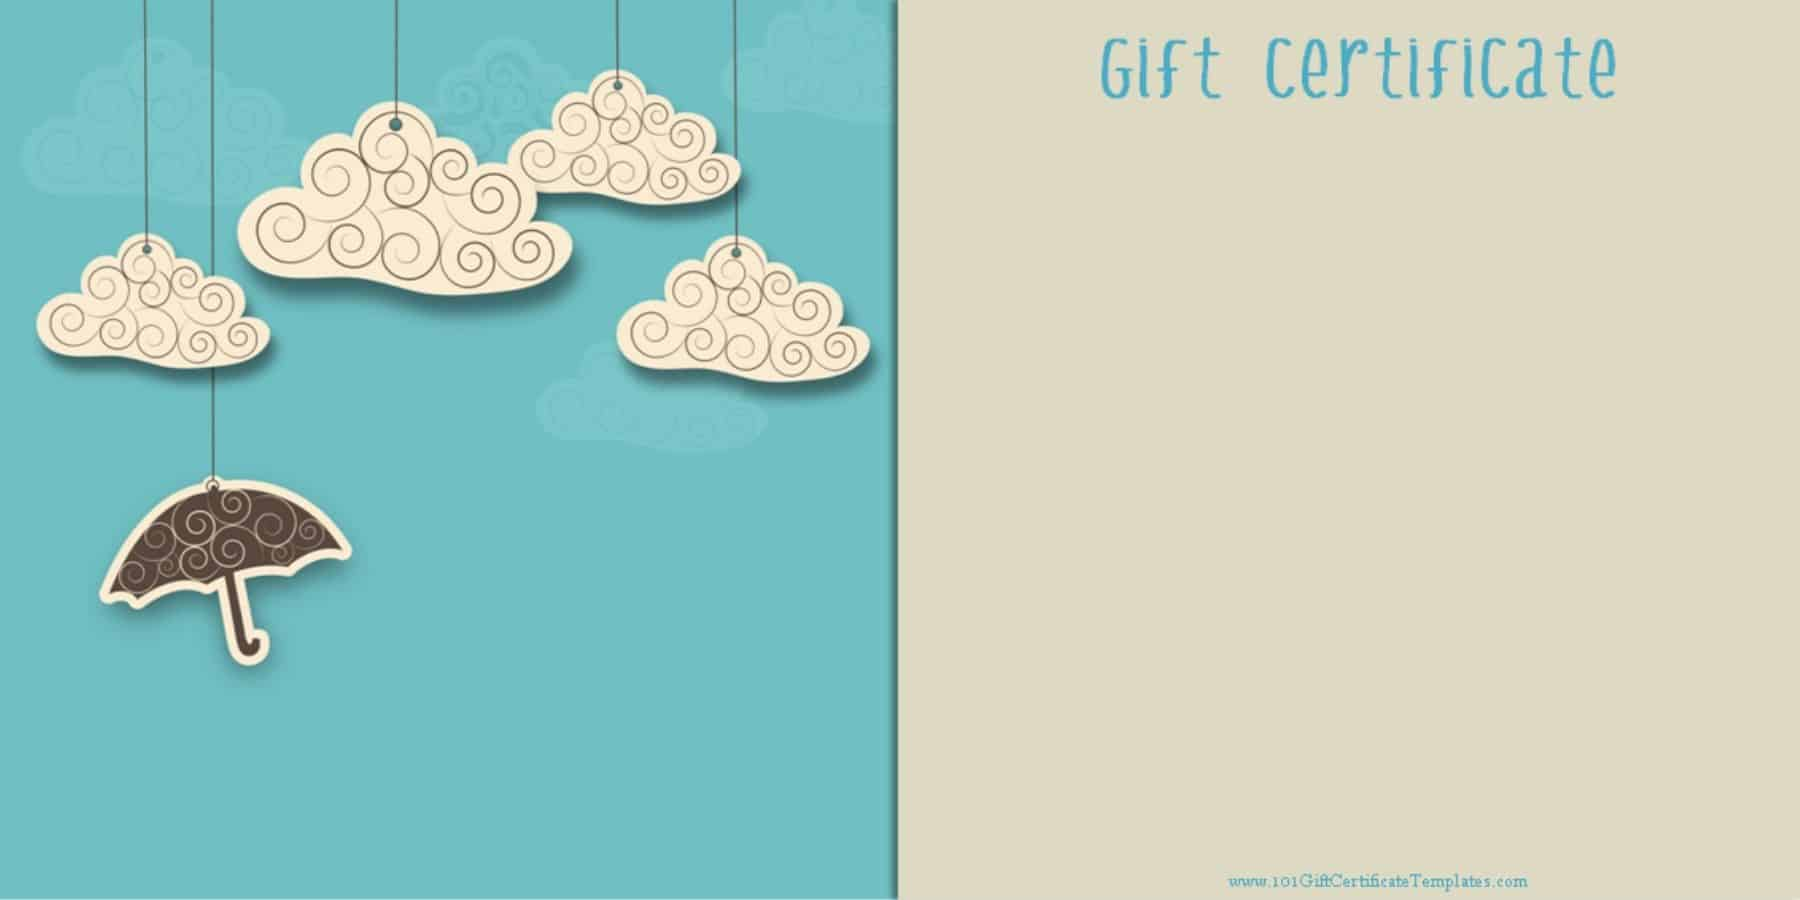 Printable gift certificate templates free printable gift card which you can customize before you print alramifo Image collections